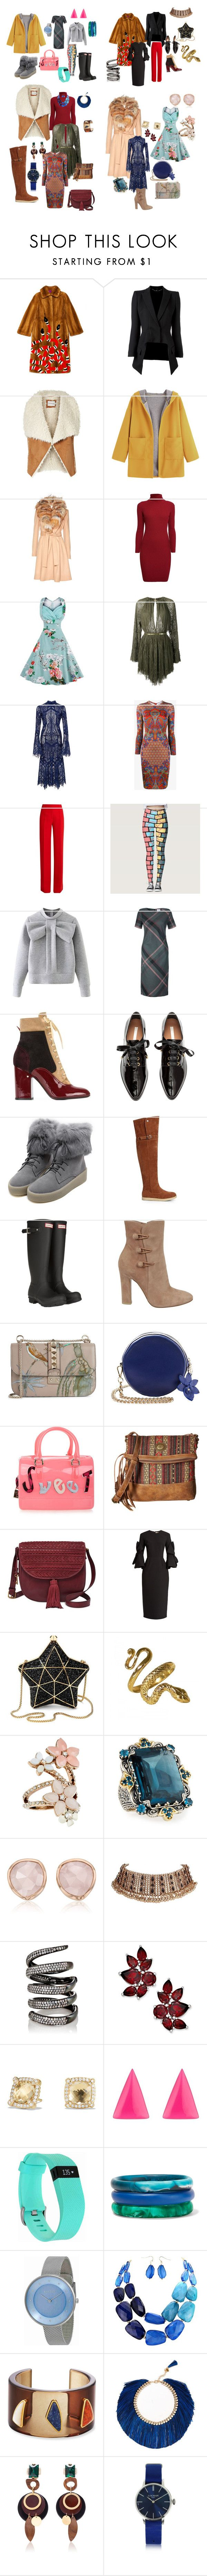 4 вектора стиля by cherry1979 on Polyvore featuring Givenchy, Jay Ahr, Rumour London, Roksanda, WithChic, Alice + Olivia, Gucci, Alexander McQueen, Marco de Vincenzo and Hunter